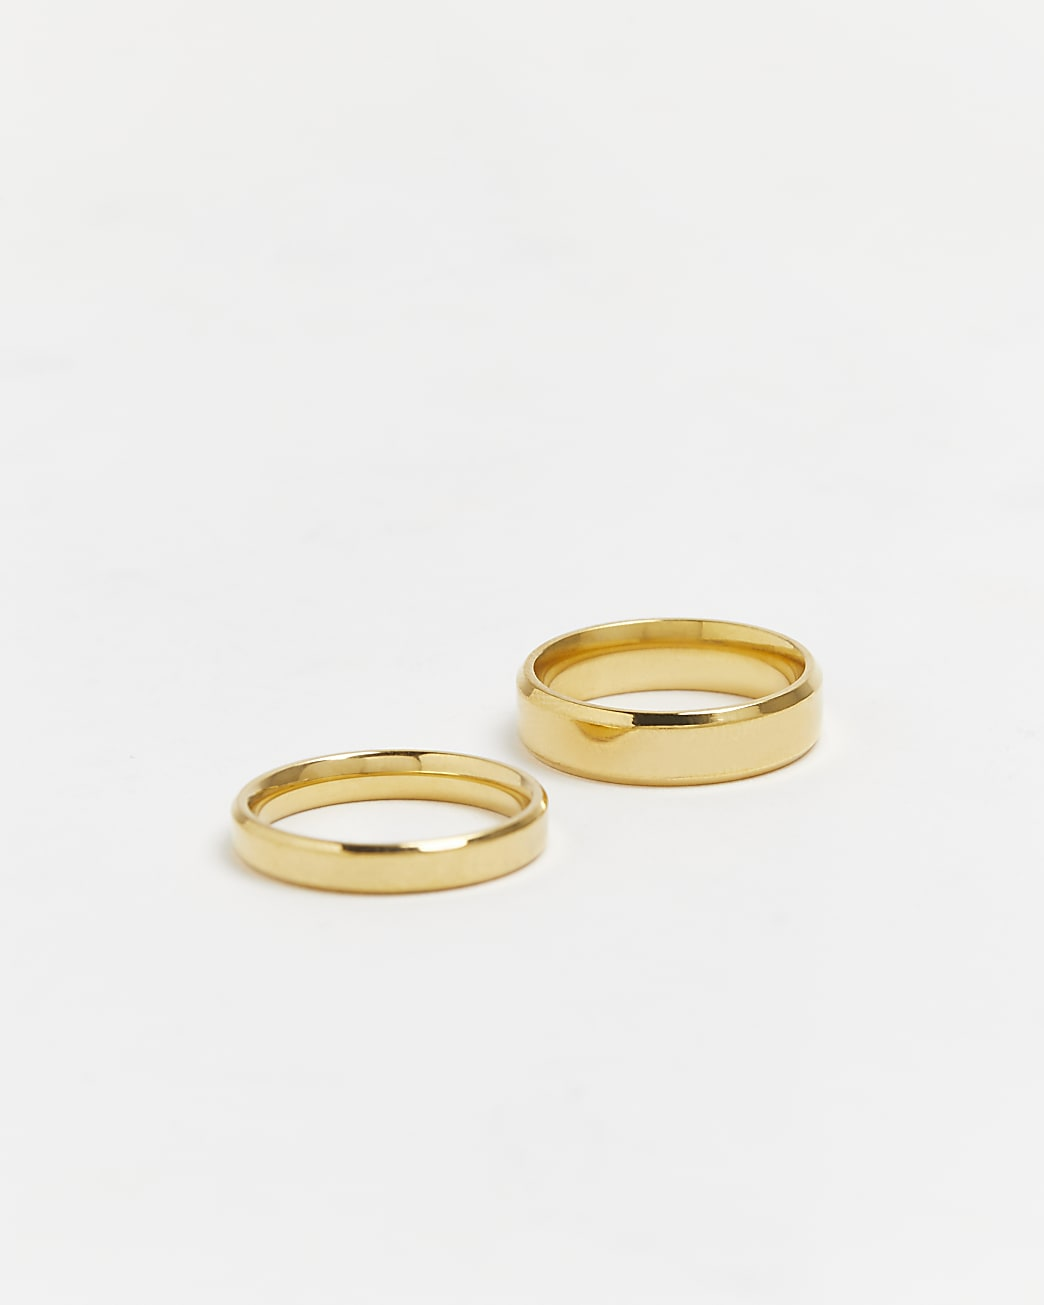 Gold stainless steel band rings 2 pack